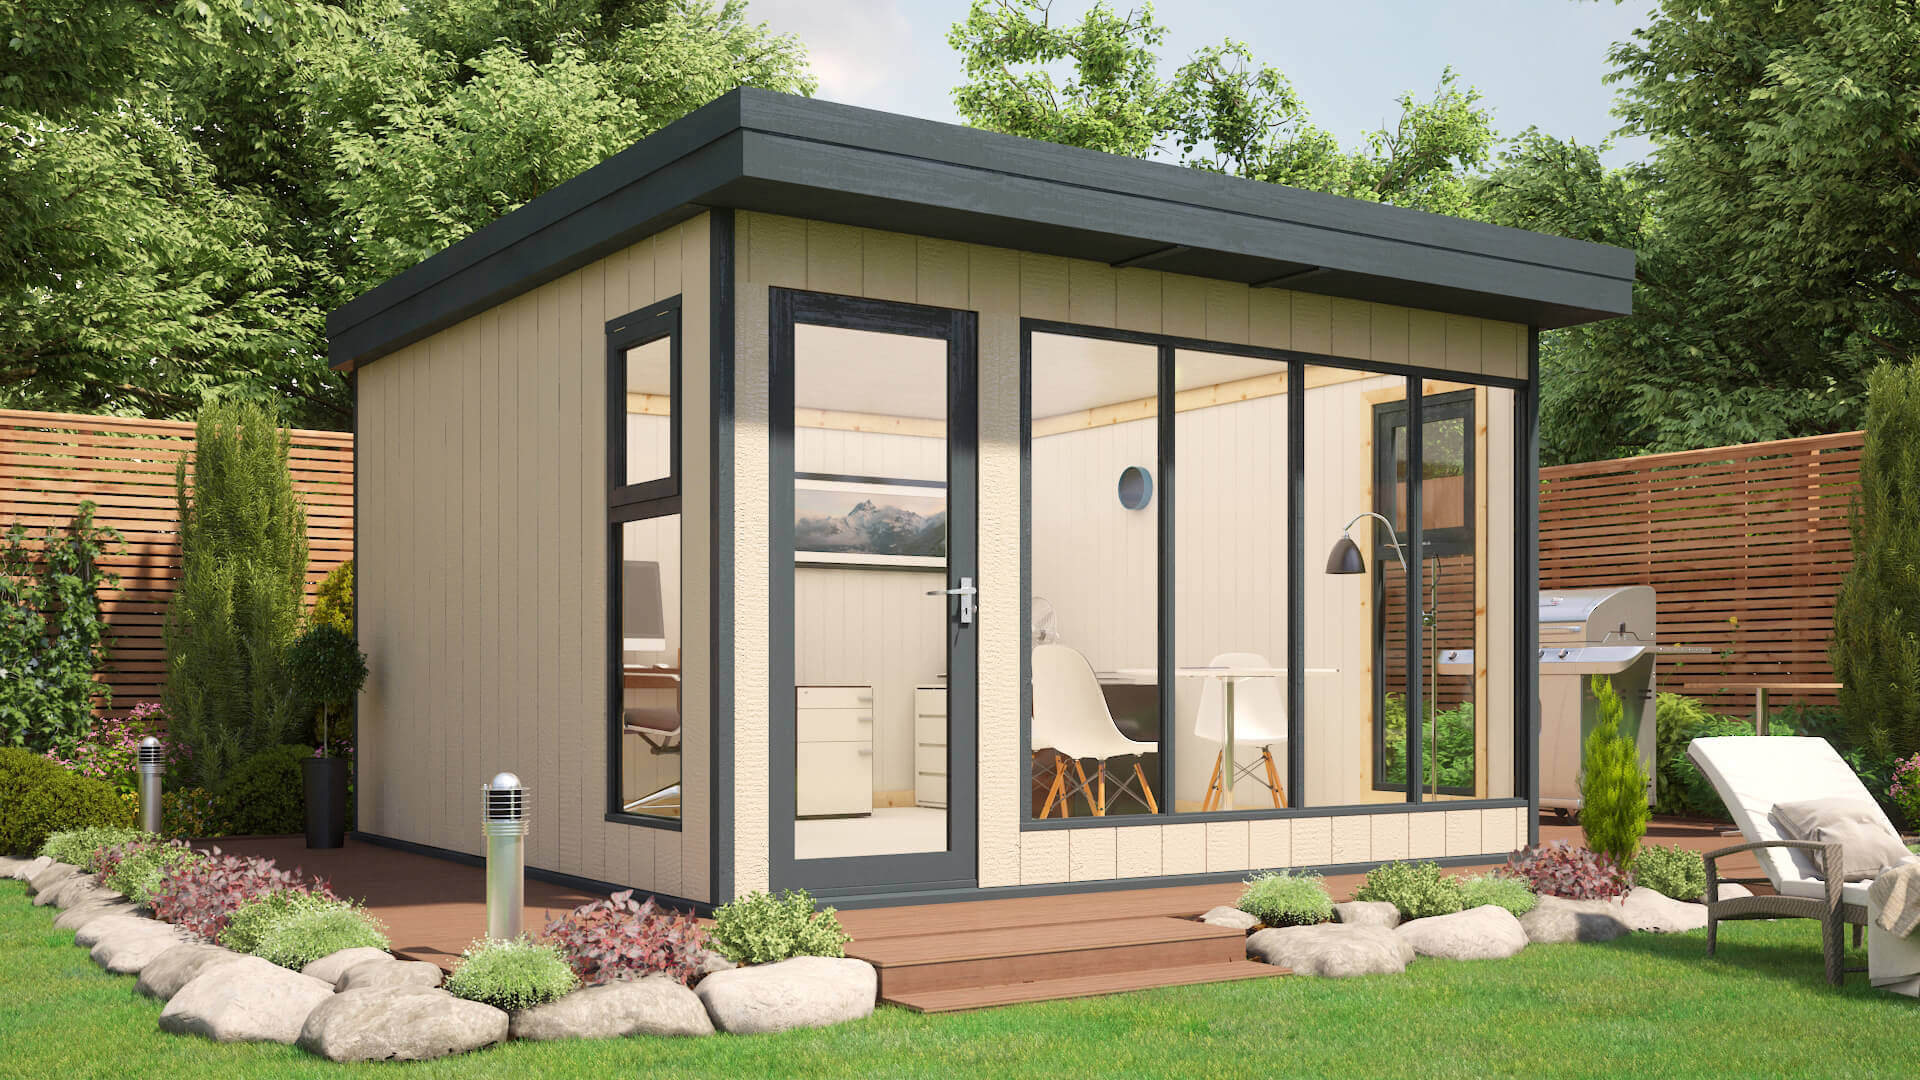 Garden Room 12x12 Composite Cladding Tongue and Groove Roof and Floor Windowed 02